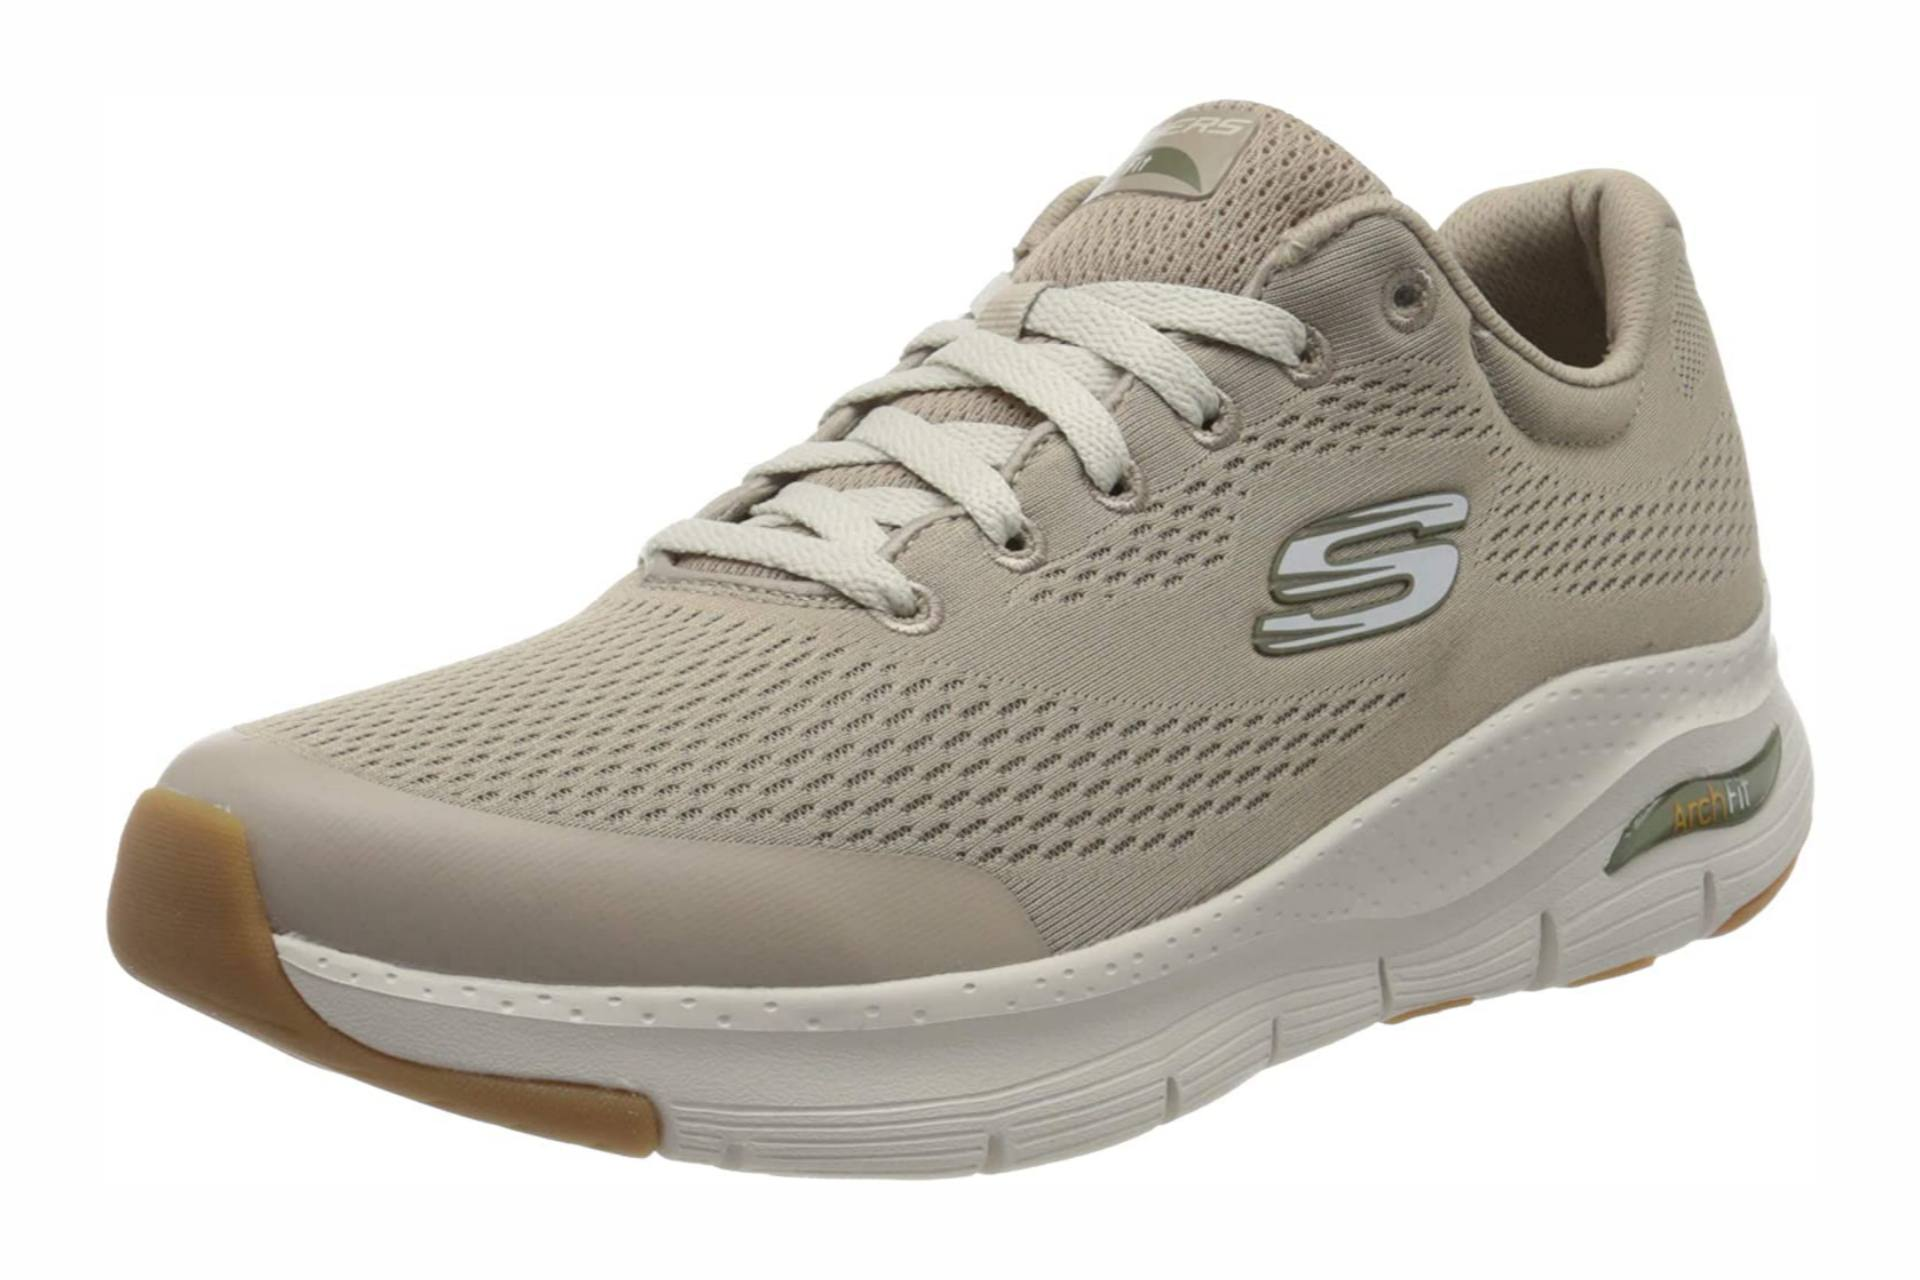 Sneakers for arch support